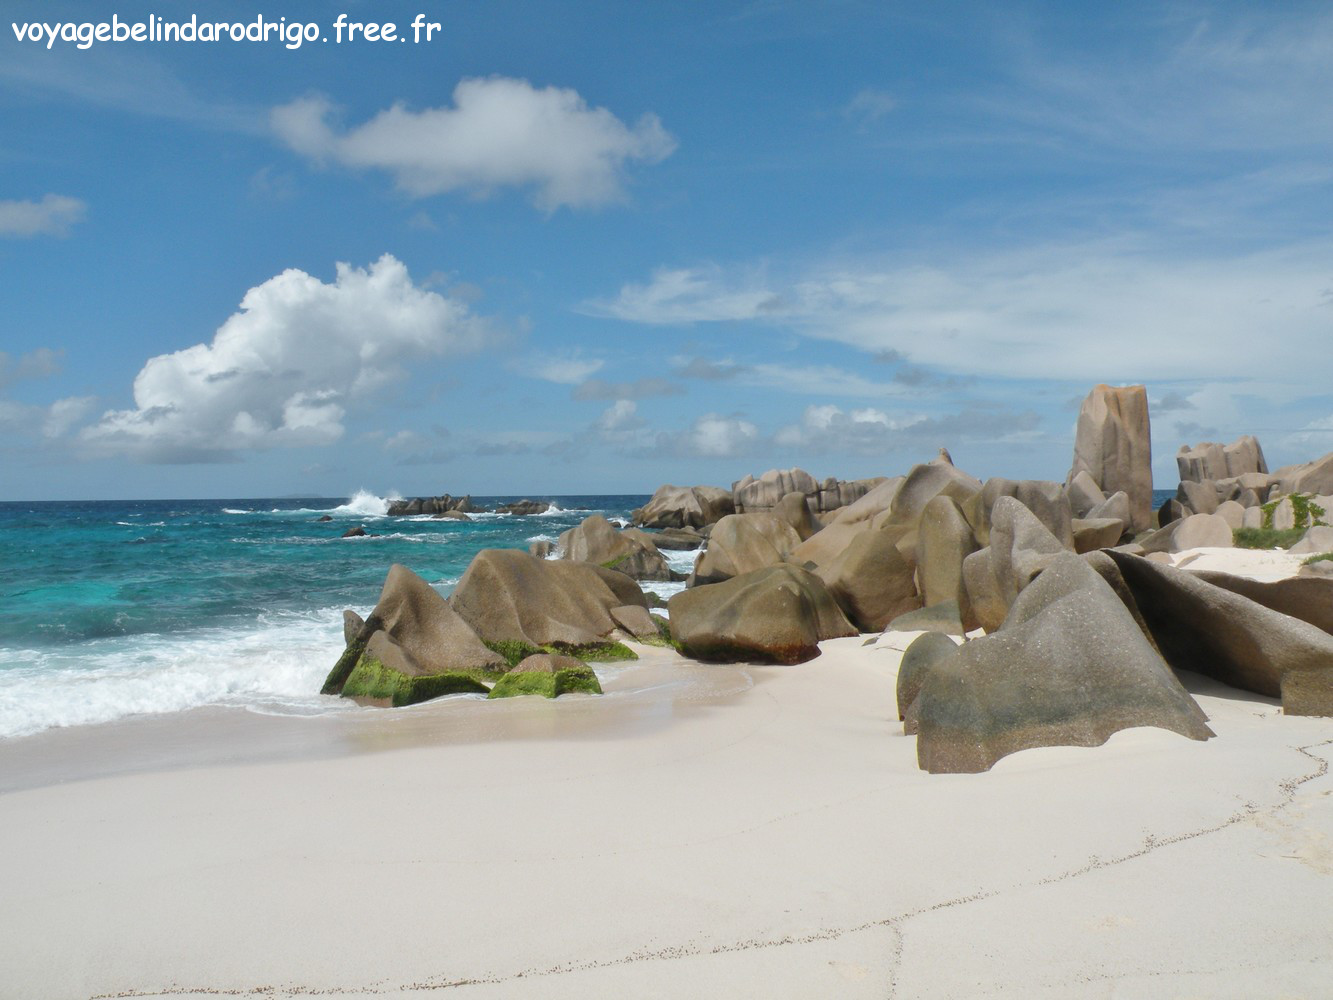 Grand l'Anse - La Digue